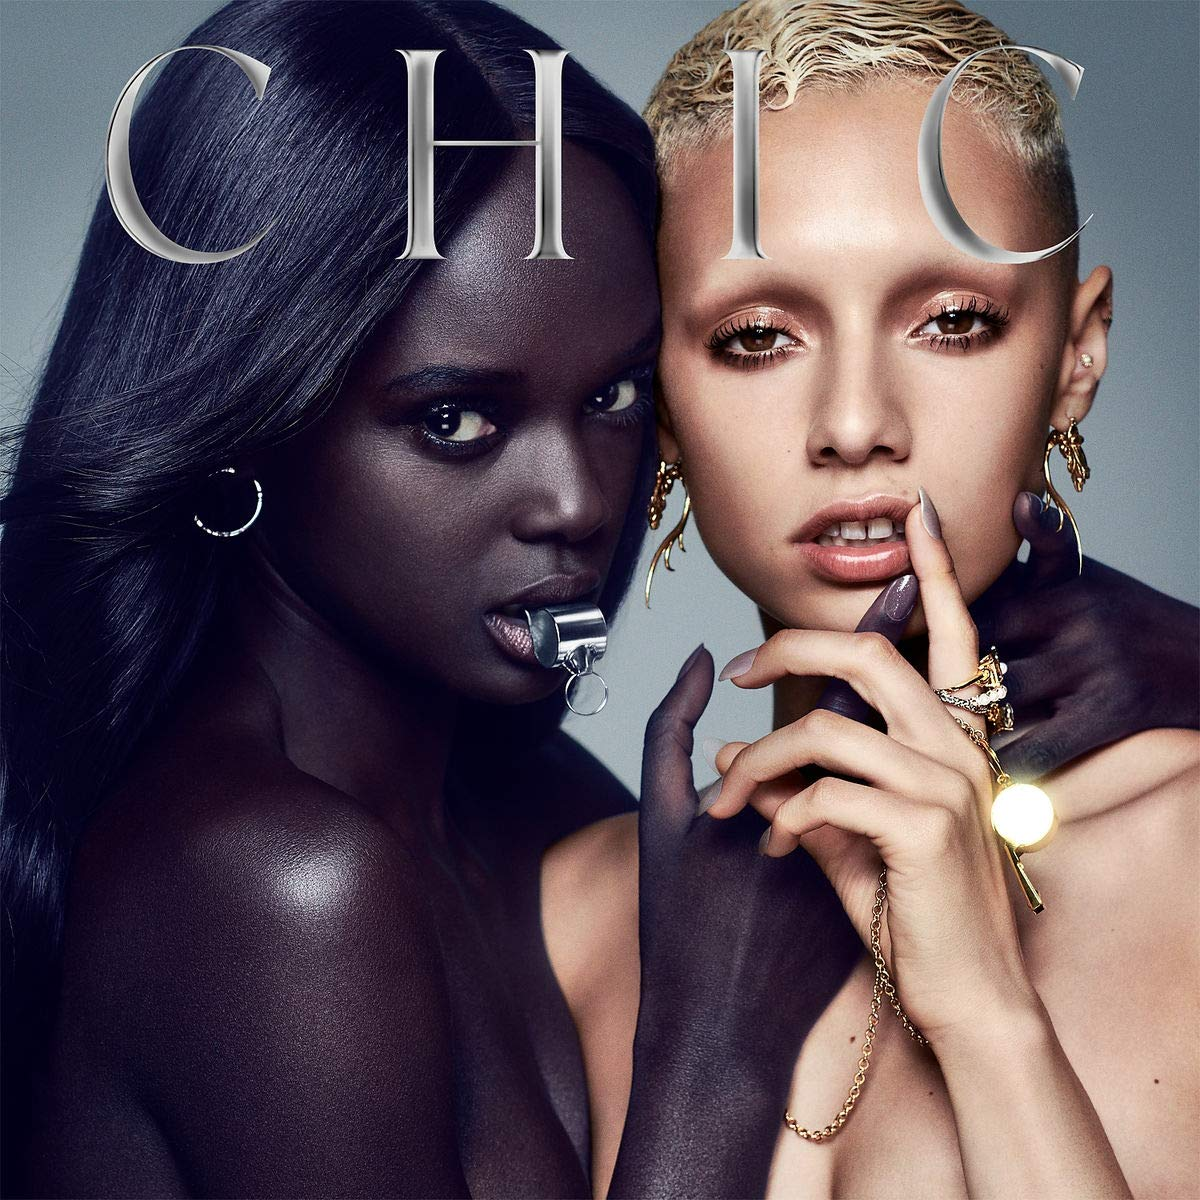 CD : NILE RODGERS & CHIC - It's About Time